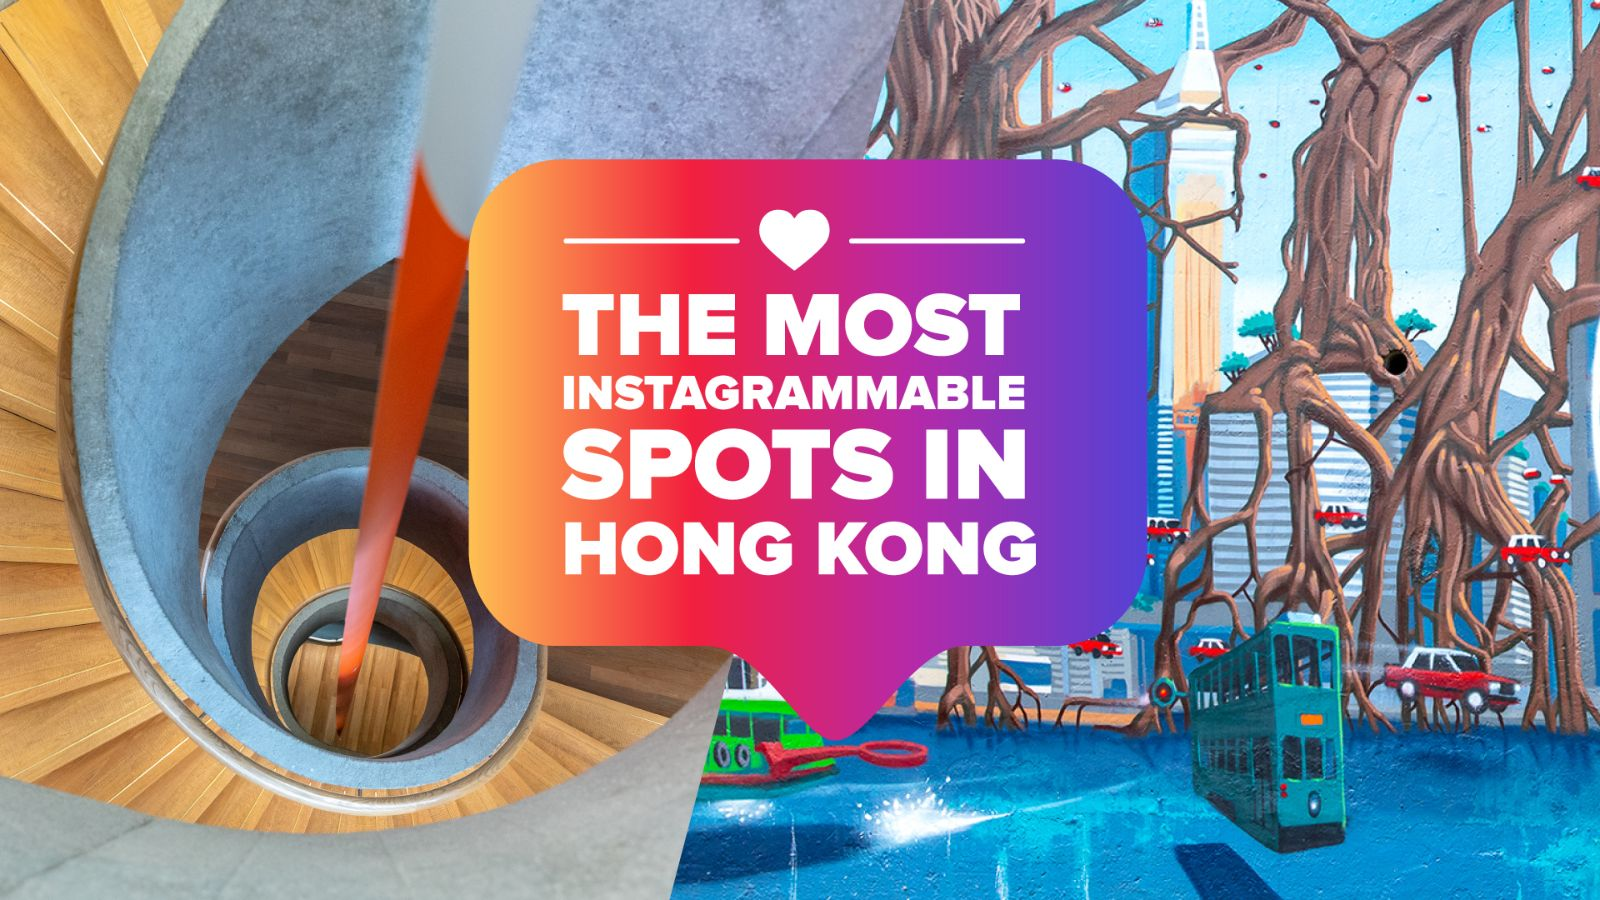 Feed your camera with 7 of the best Instagrammable spots in Hong Kong